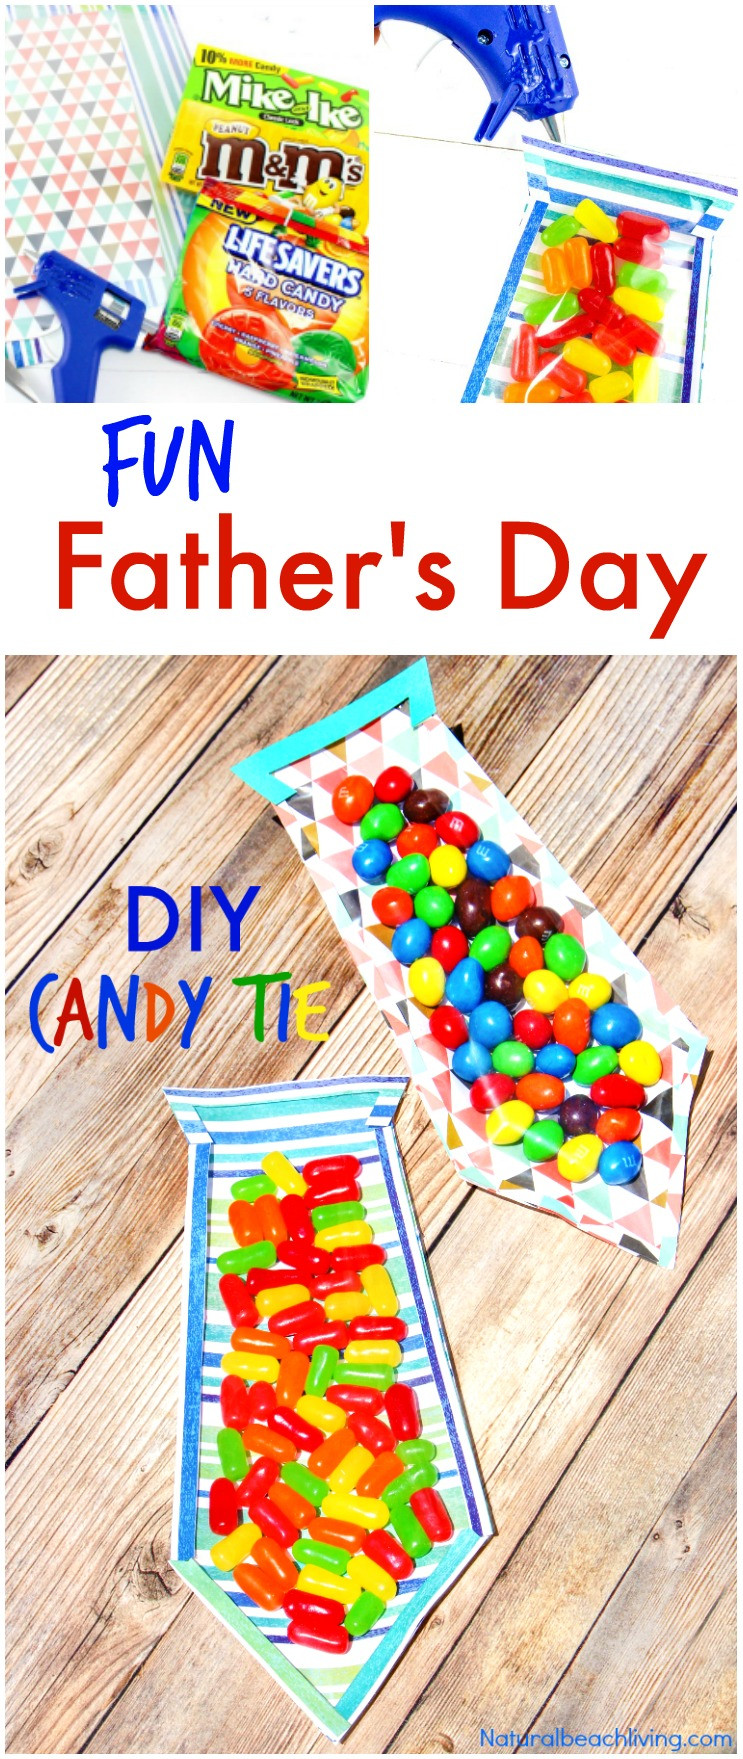 DIY Father'S Day Gifts From Kids  The Best DIY Father s Day Card Father s Day Candy Tie